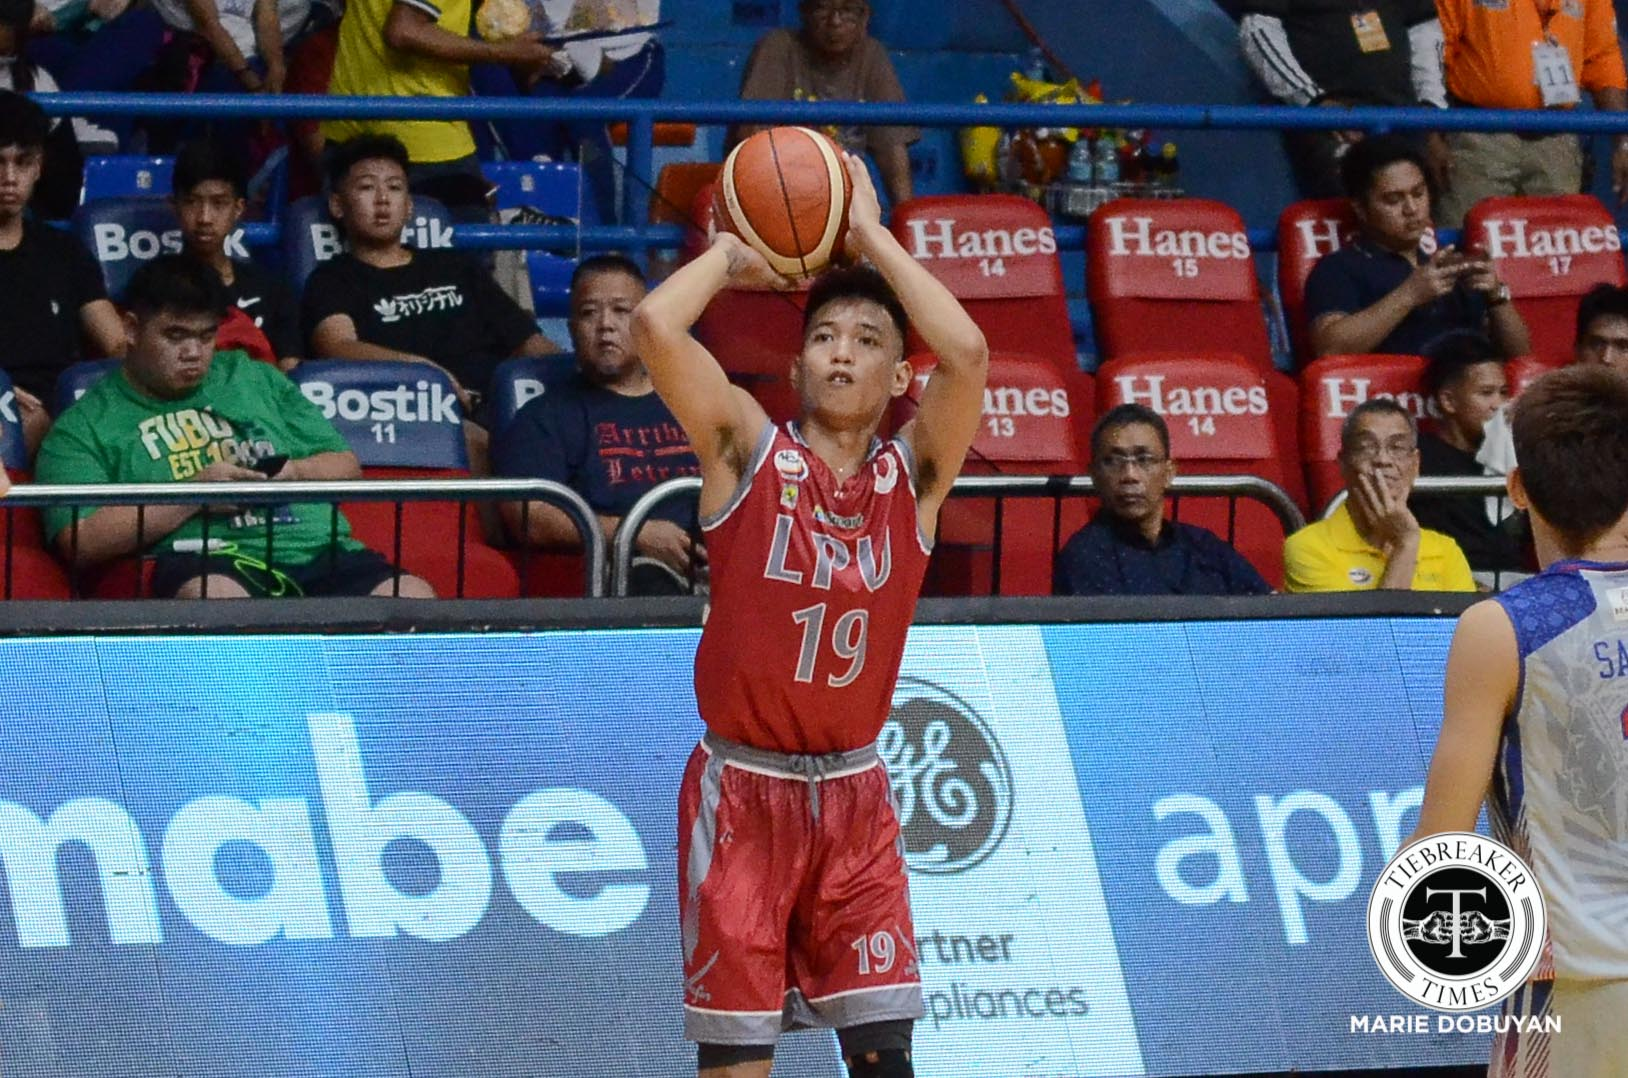 Philippine Sports News - Tiebreaker Times Marcelino twins show Topex Robinson they can defend like him Basketball LPU NCAA News  Topex Robinson NCAA Season 93 Seniors Basketball NCAA Season 93 Lyceum Seniors Basketball Jayvee Marcelino Jaycee Marcelino